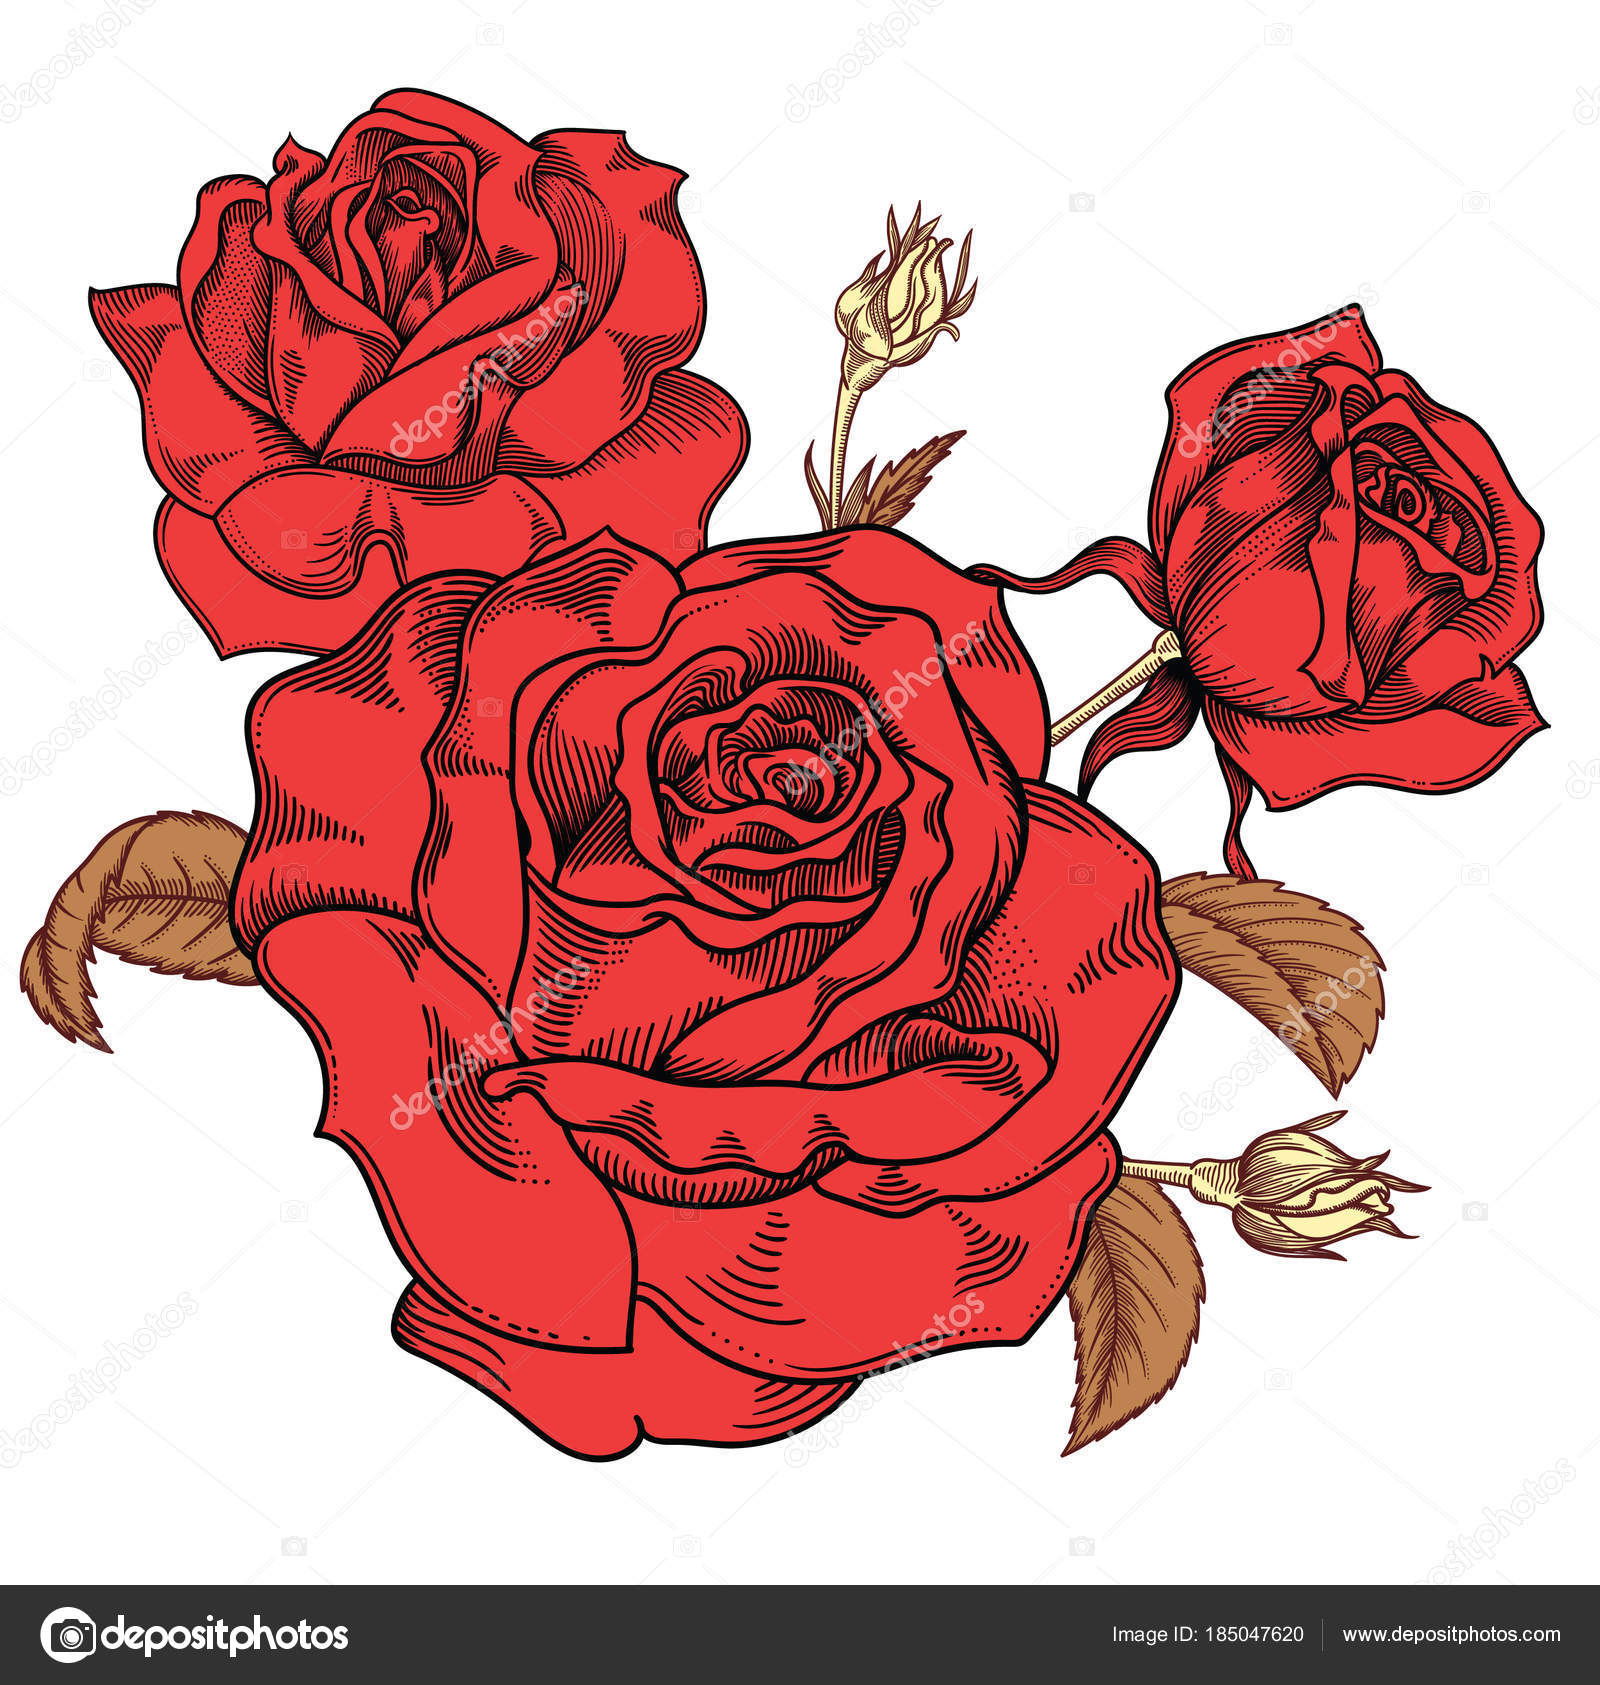 Rose Flower Drawing Images at GetDrawings.com | Free for personal ...